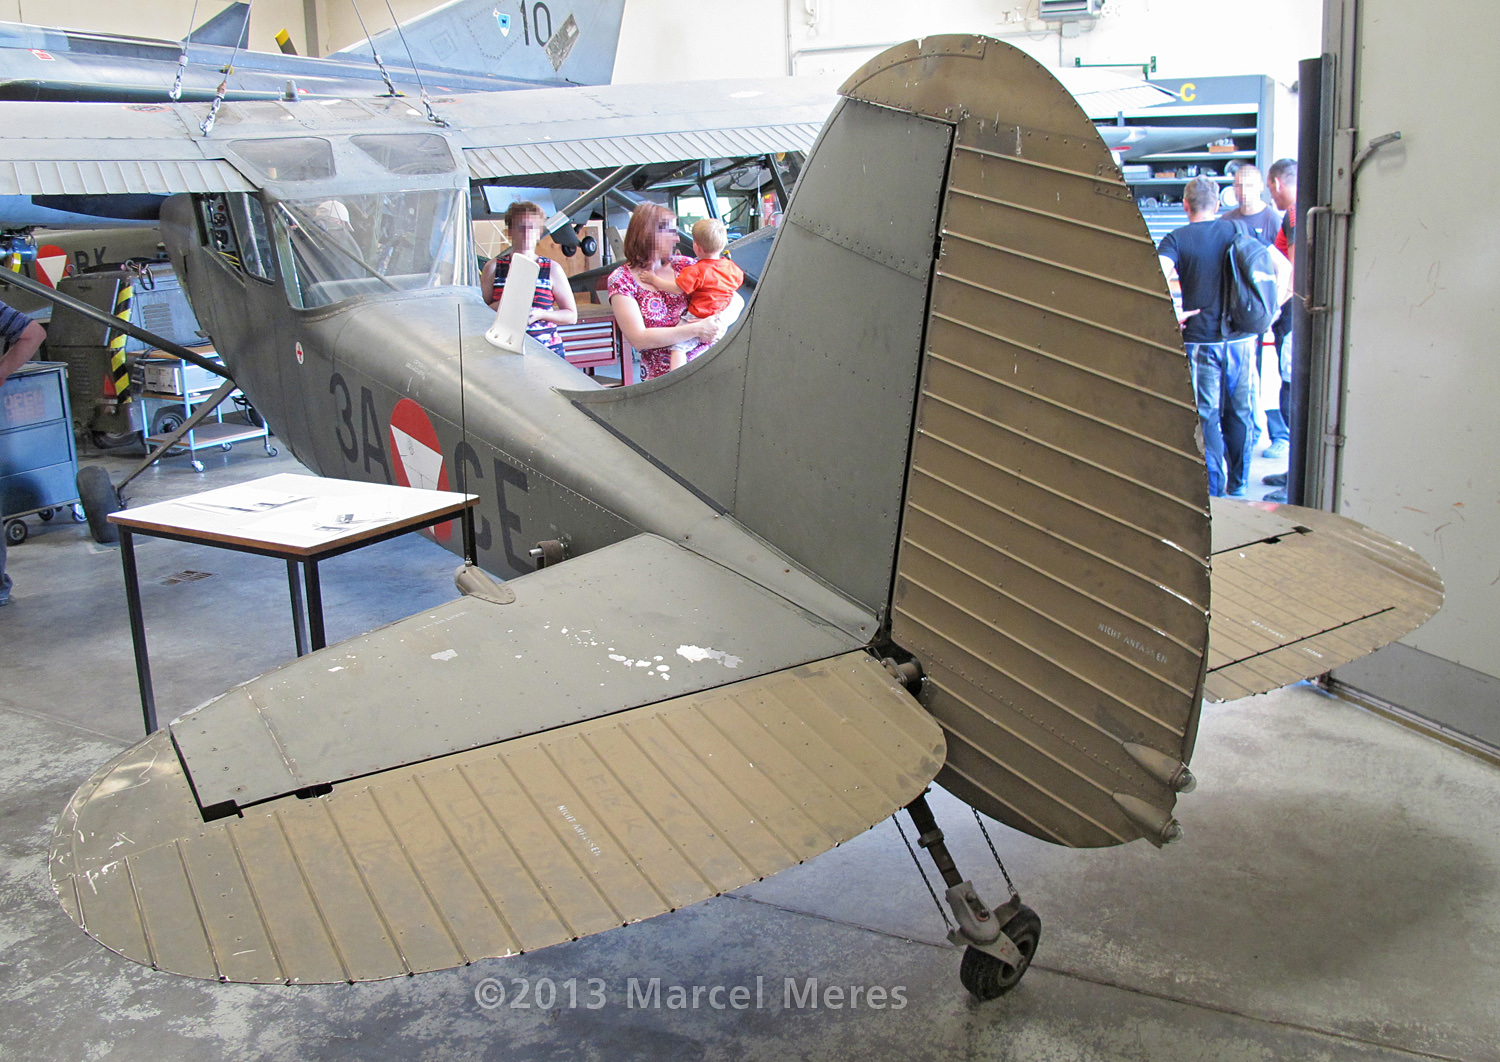 Cessna O-1 / L-19 Bird Dog, Austrian army, Tail section